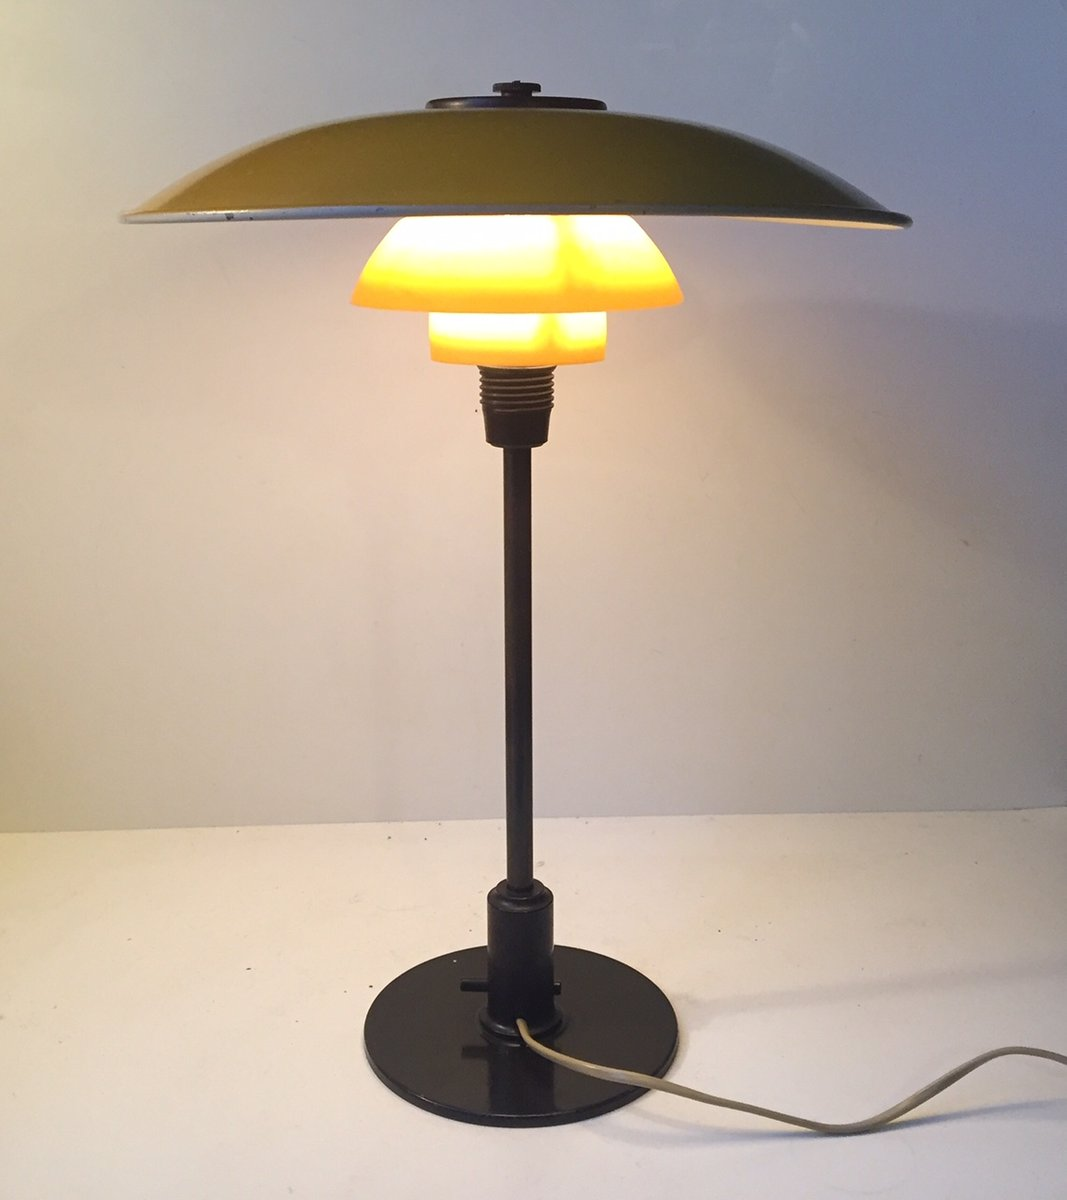 Ph 3 5 2 Table Lamp By Poul Henningsen For Louis Poulsen 1930s At Pamono